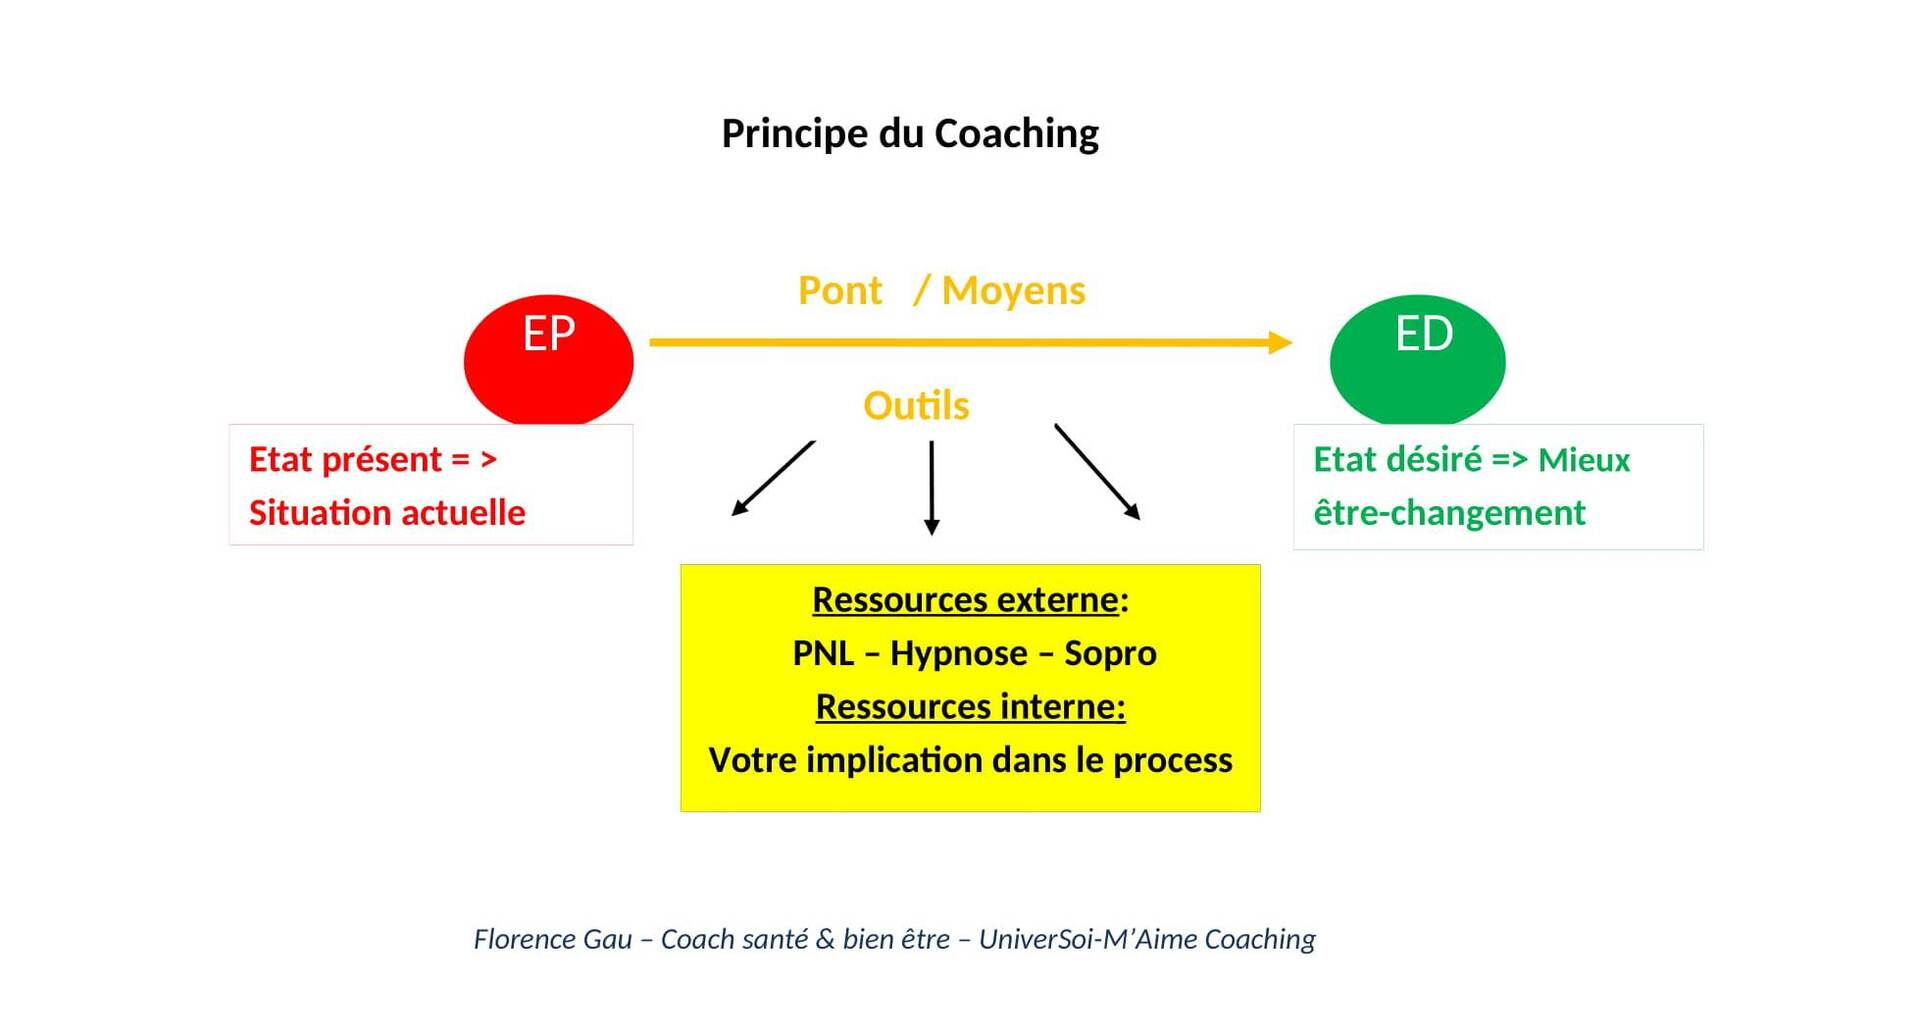 Principe du Coaching